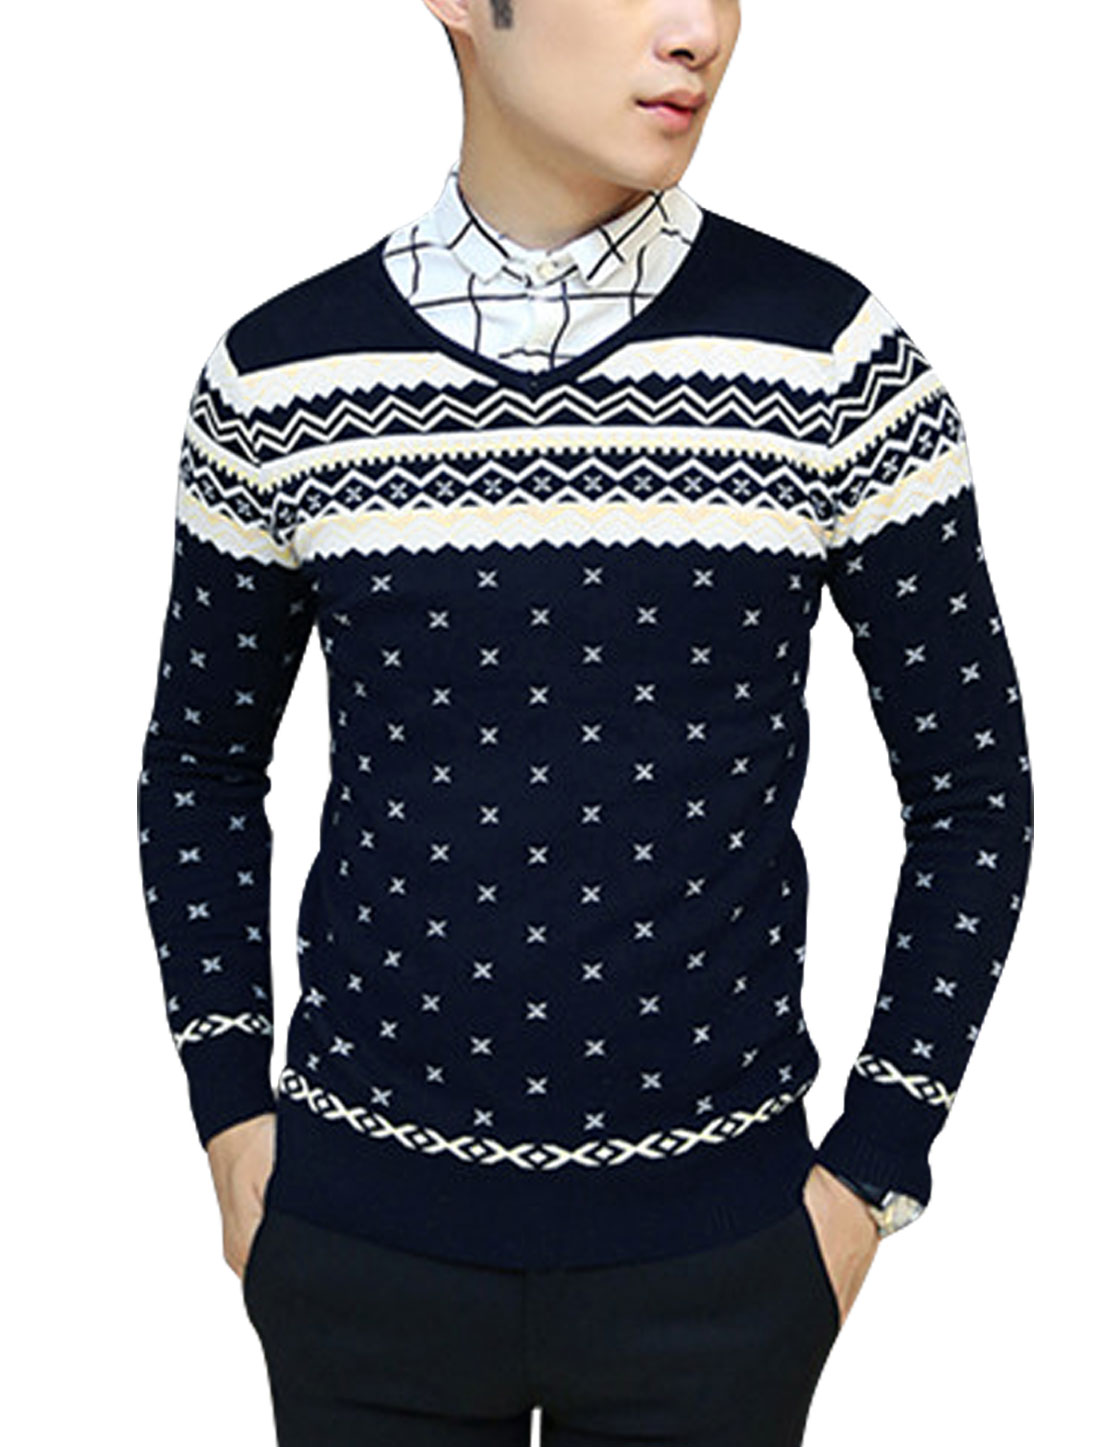 Men Novelty Pattern Long Sleeve Slipover Leisure Knit Shirt Navy Blue S